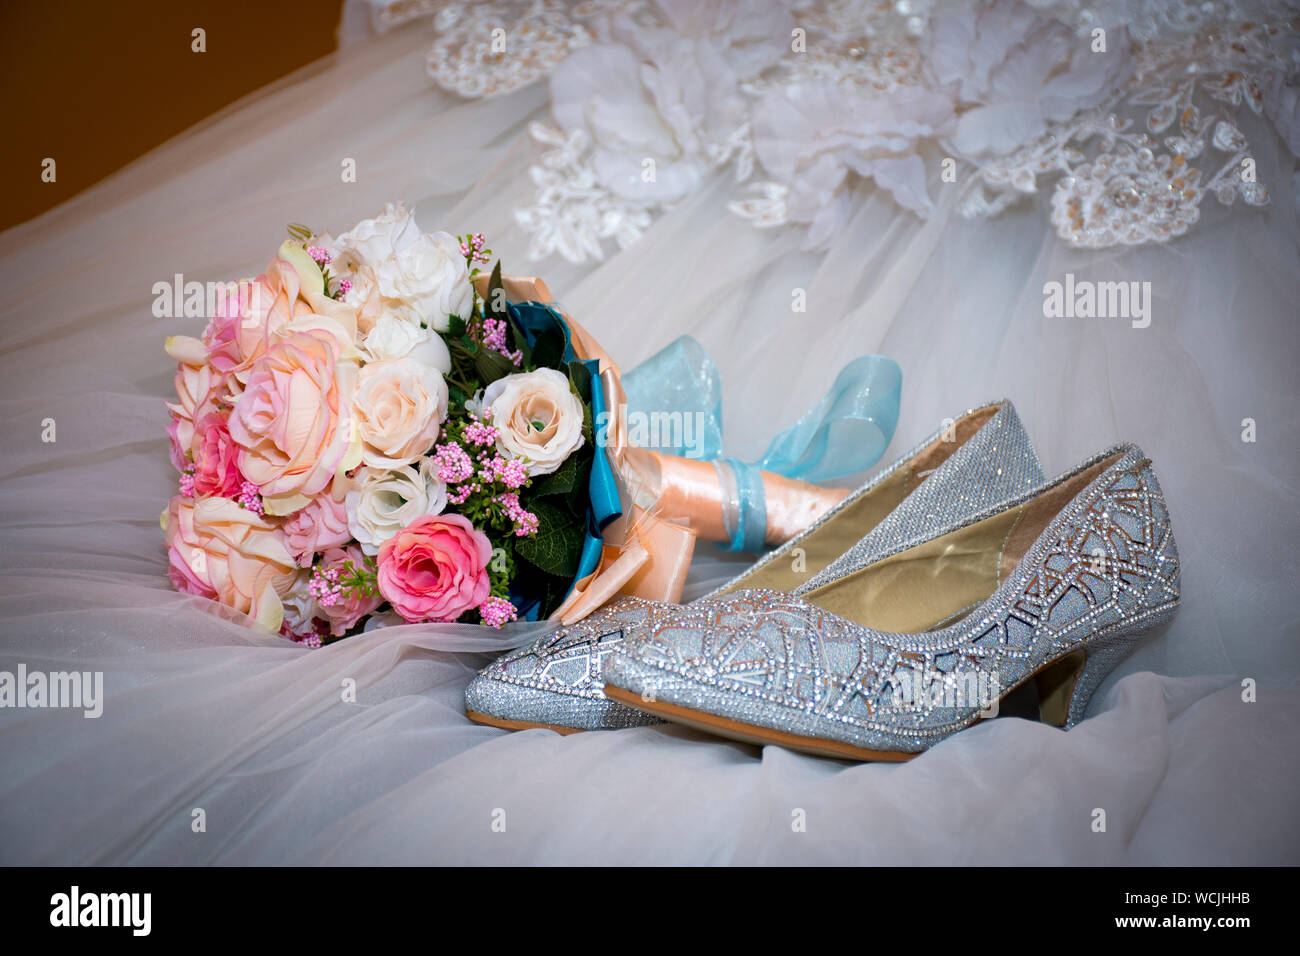 Close Up High Angle View Of Bouquet And Shoes On Wedding Dress